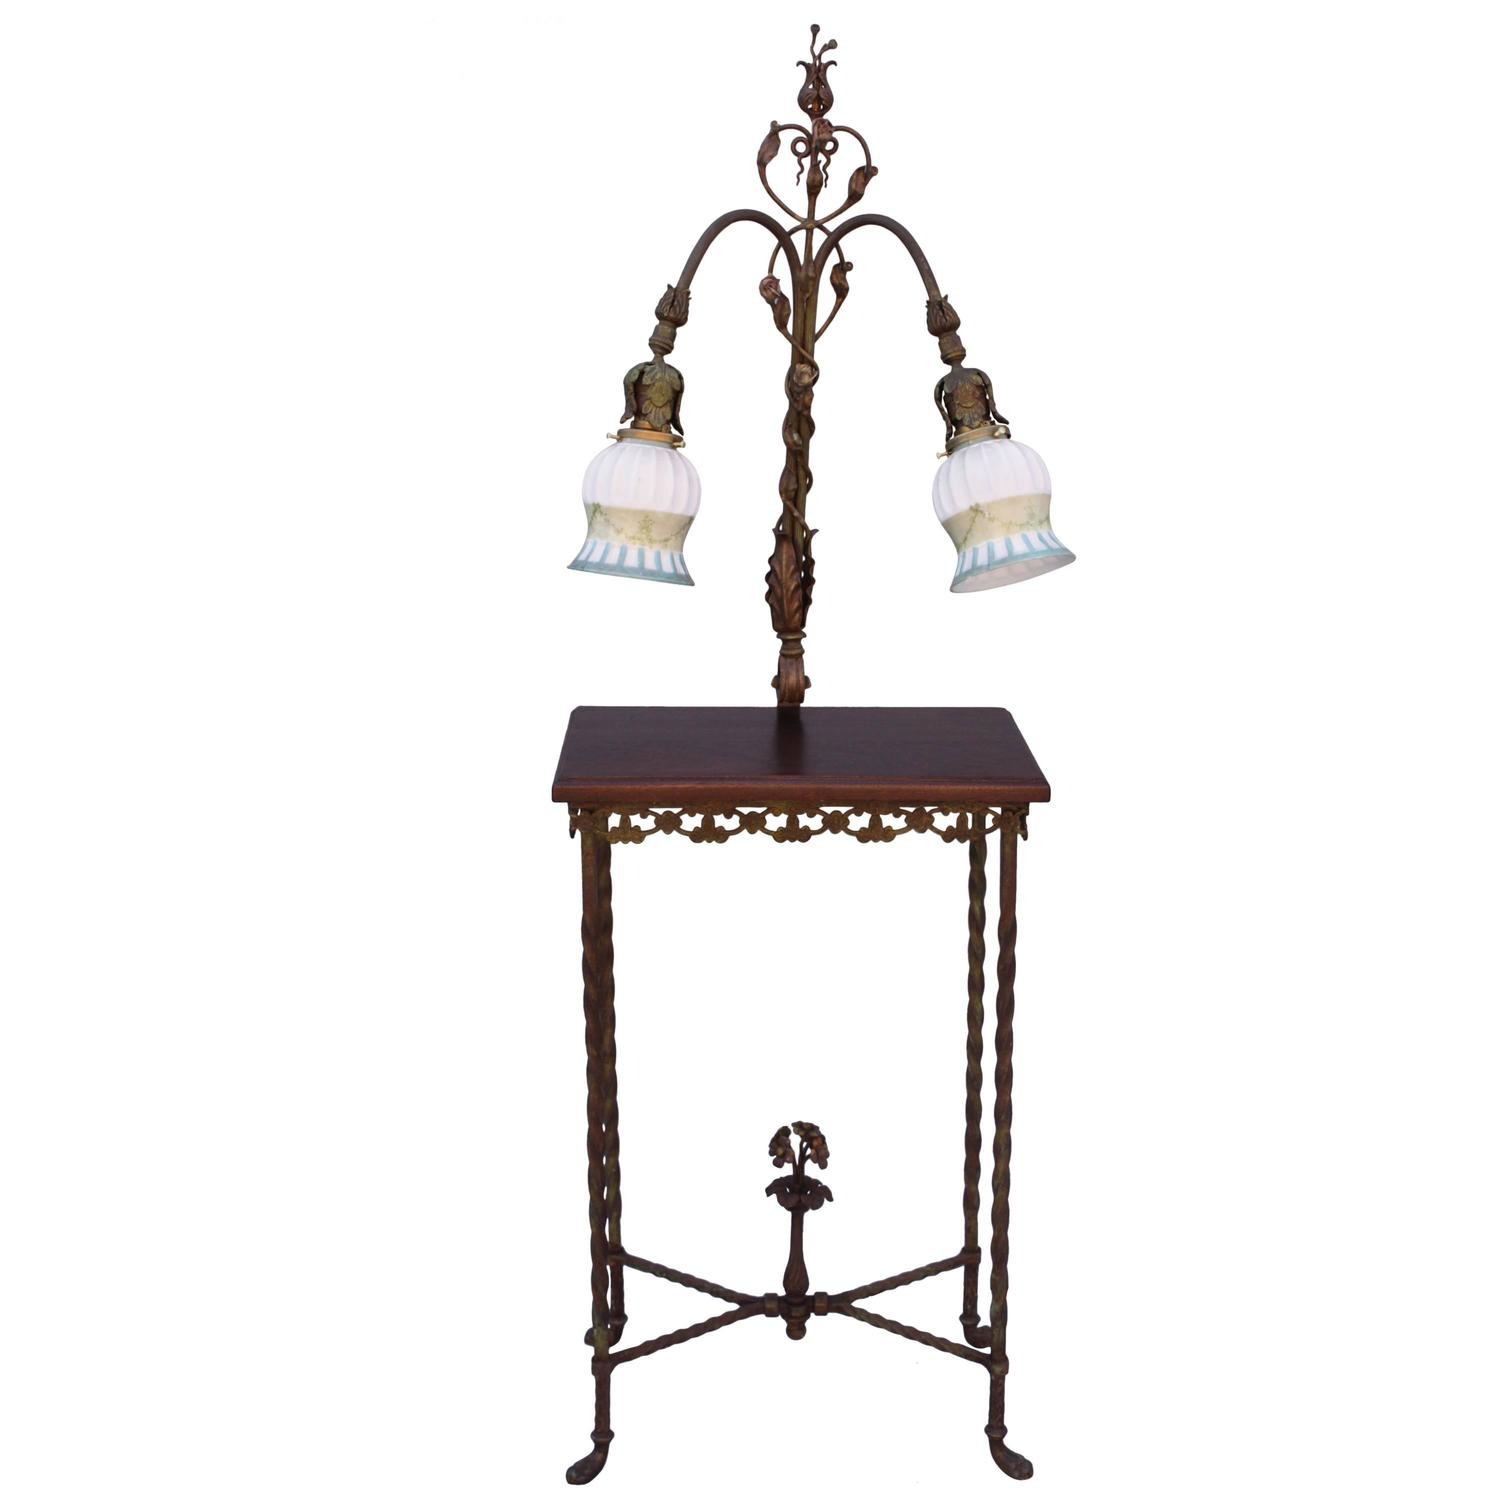 1920s wrought iron table with attached lamp for sale at 1stdibs. Black Bedroom Furniture Sets. Home Design Ideas